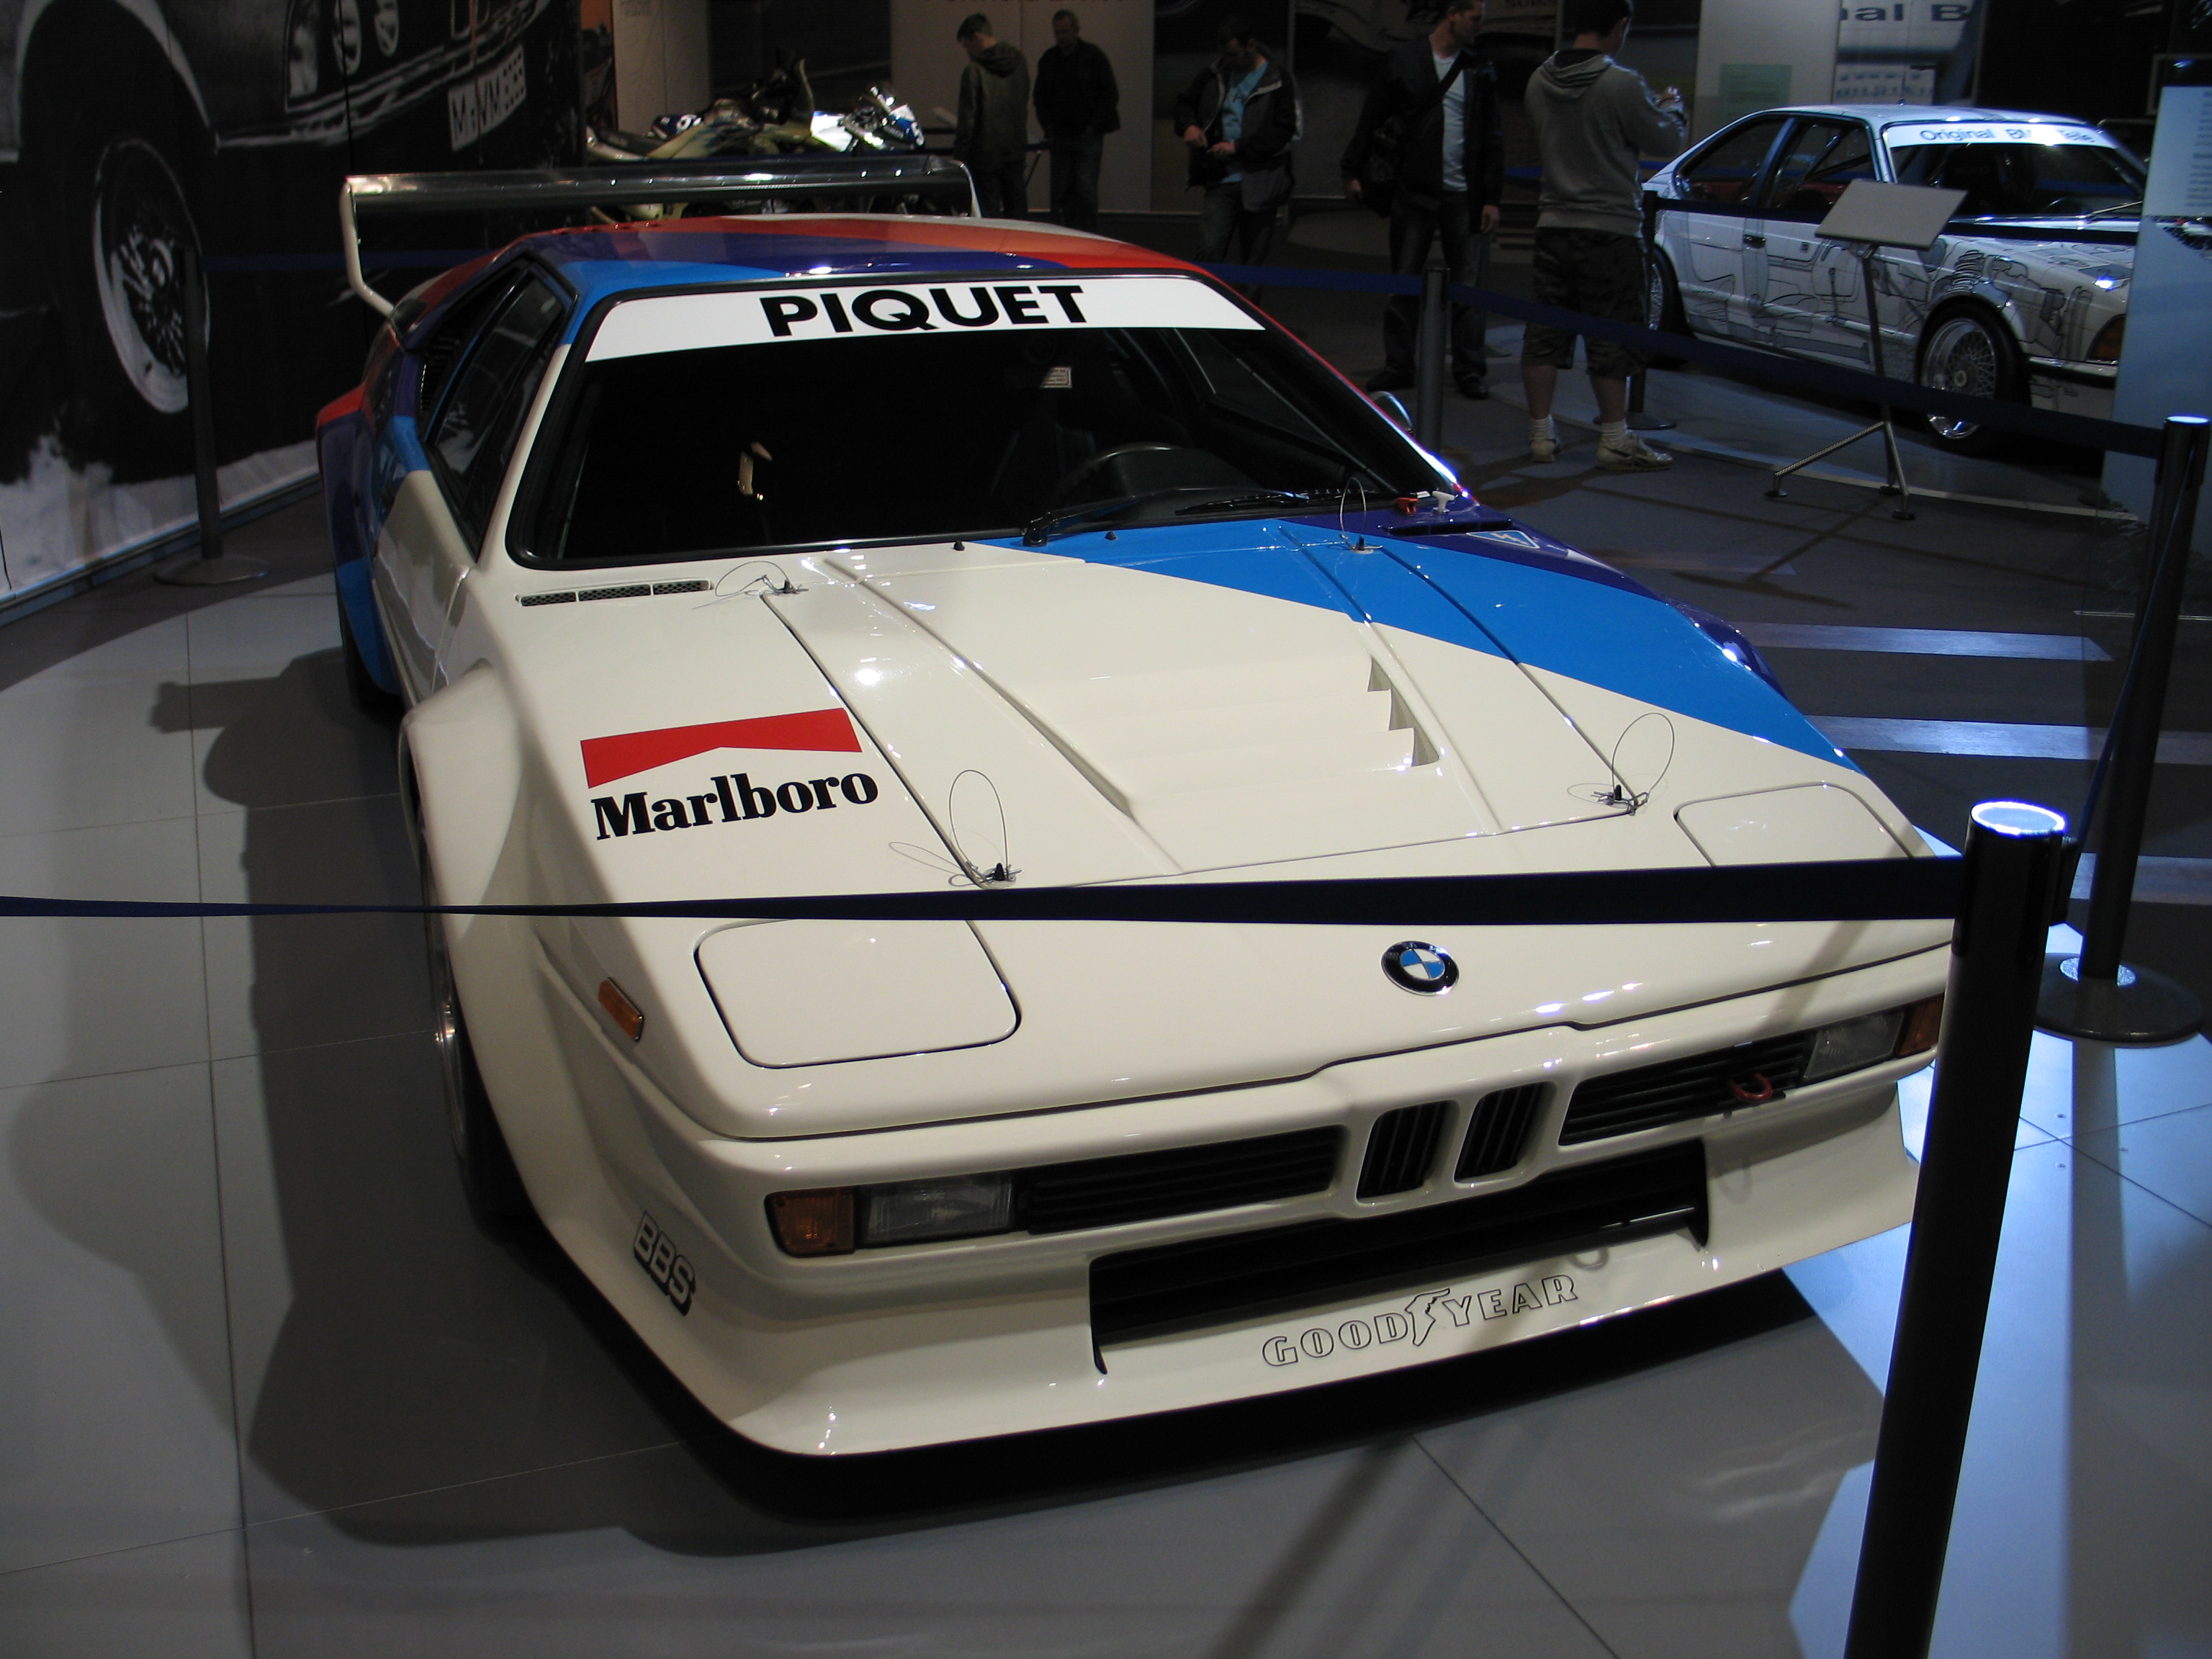 file piquet bmw m1 wikimedia commons. Black Bedroom Furniture Sets. Home Design Ideas